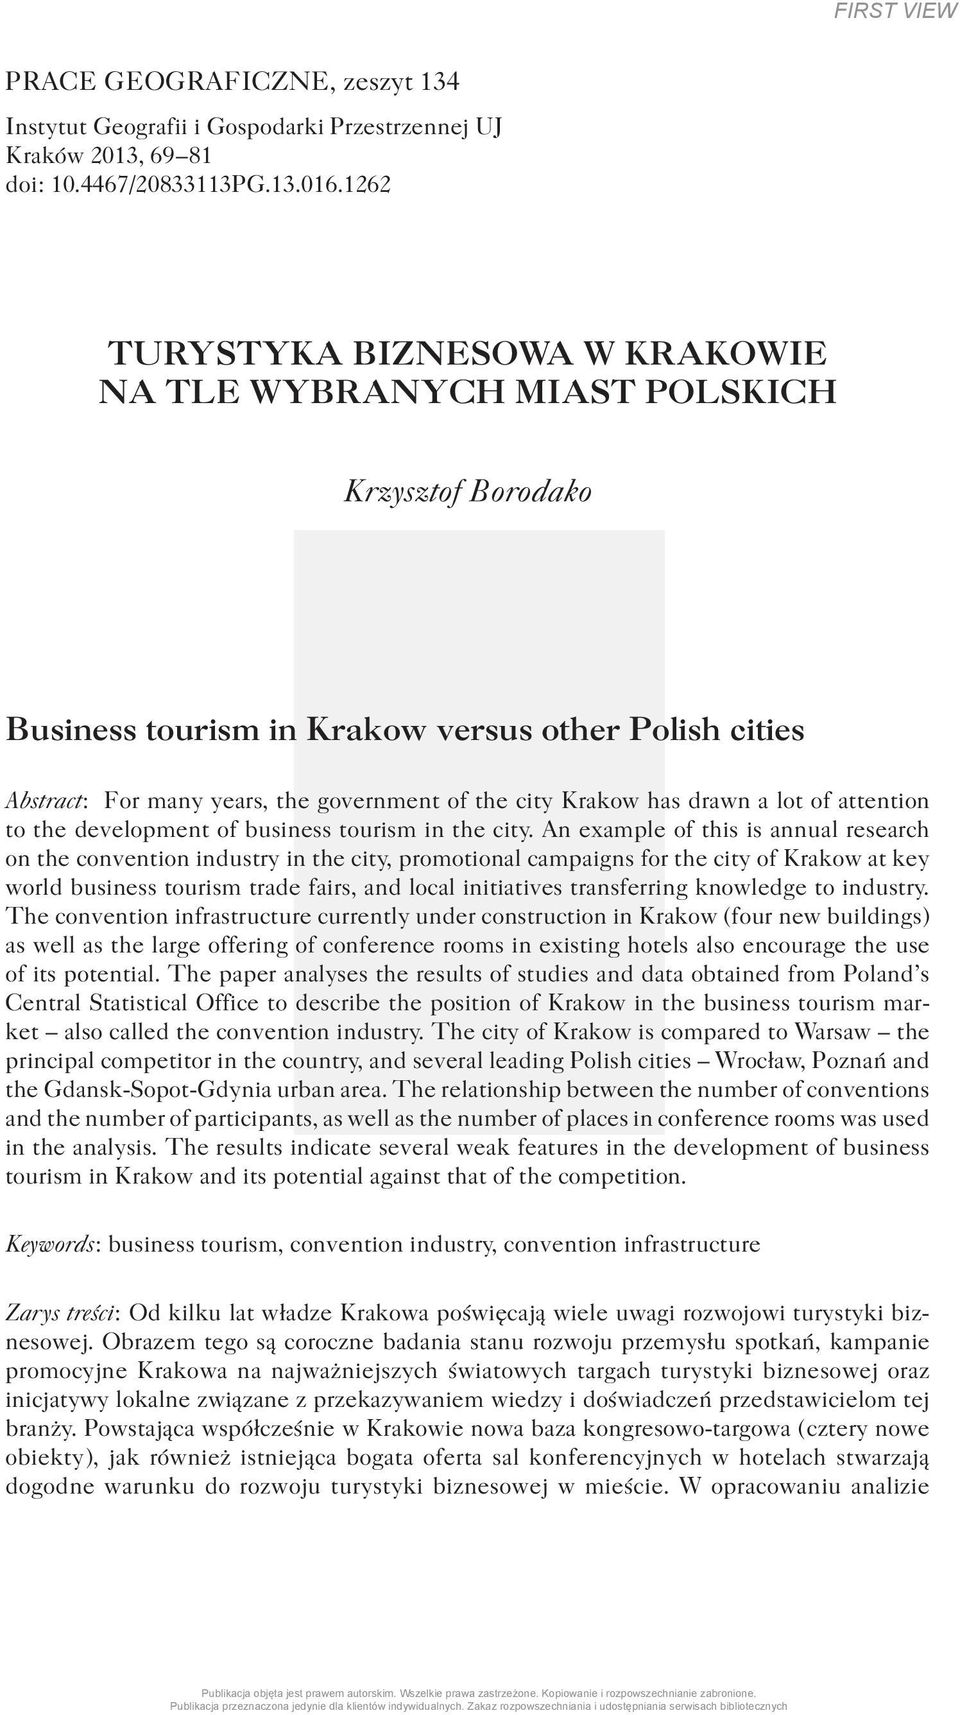 Krakow has drawn a lot of attention to the development of business tourism in the city.